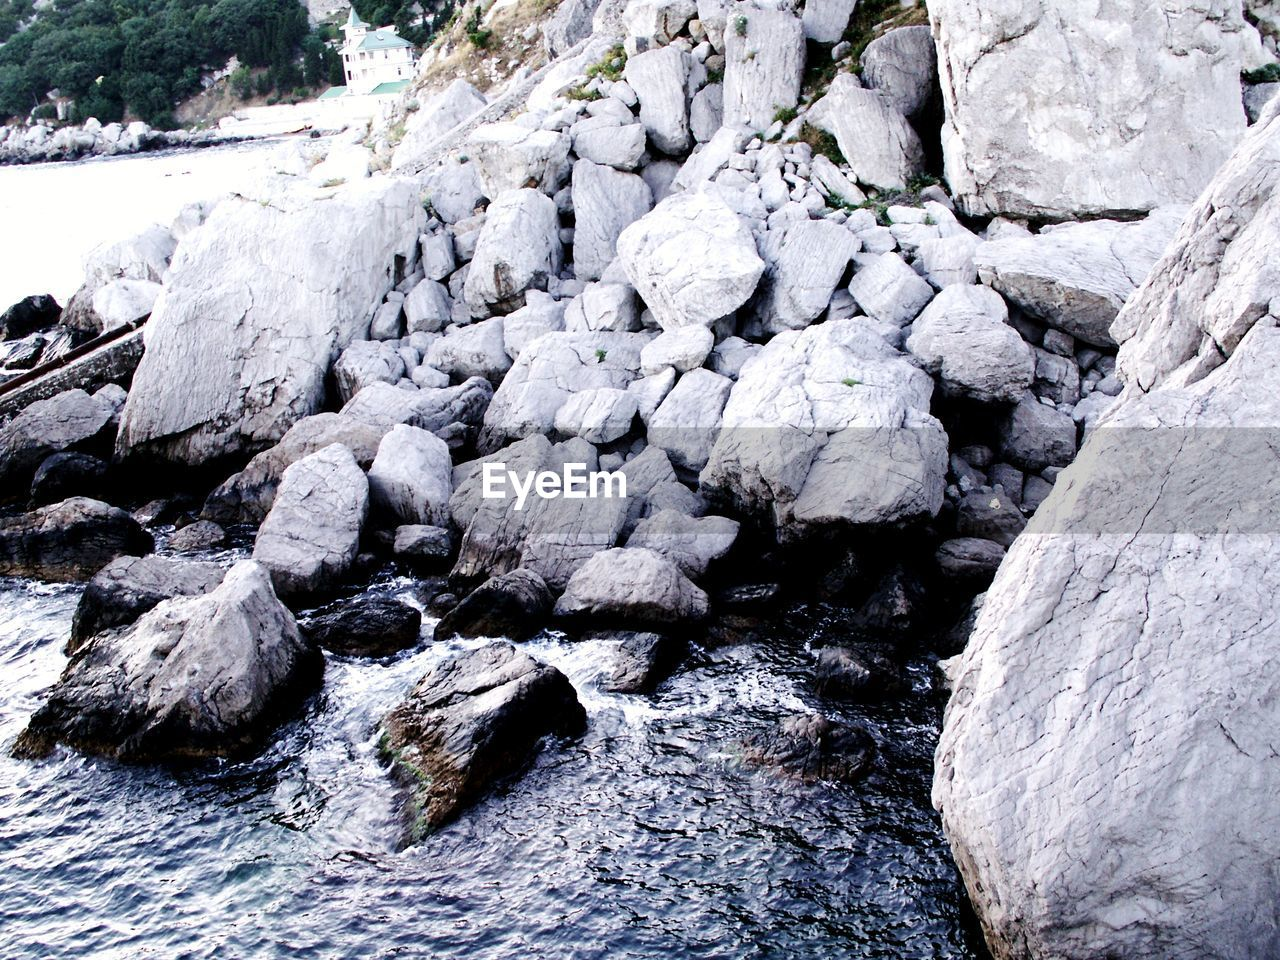 rock - object, nature, outdoors, no people, day, beauty in nature, water